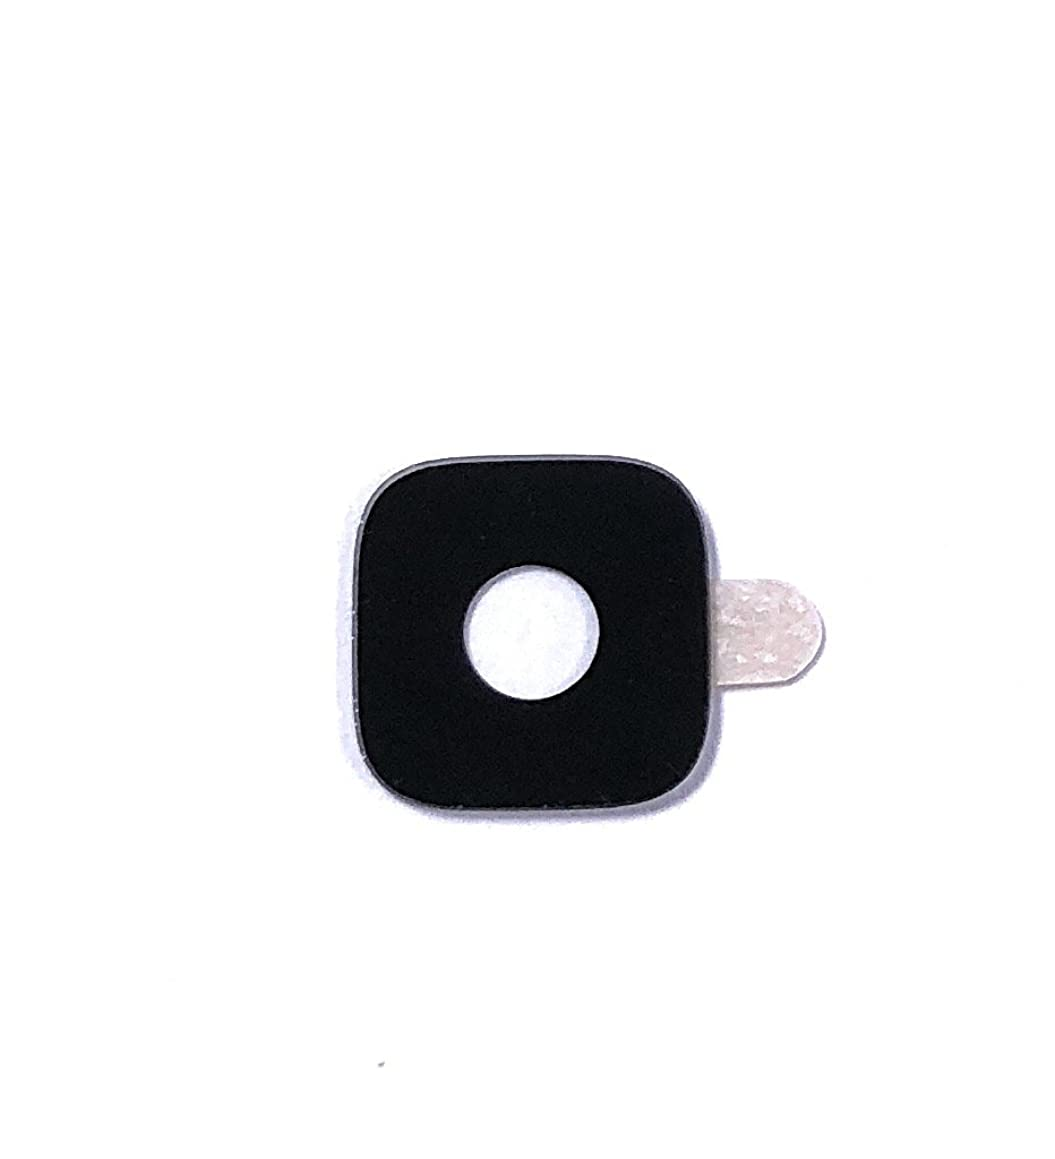 Bonafide Hardware - Replacement Part for Galaxy J3 Camera Glass Lens (Glass-only)